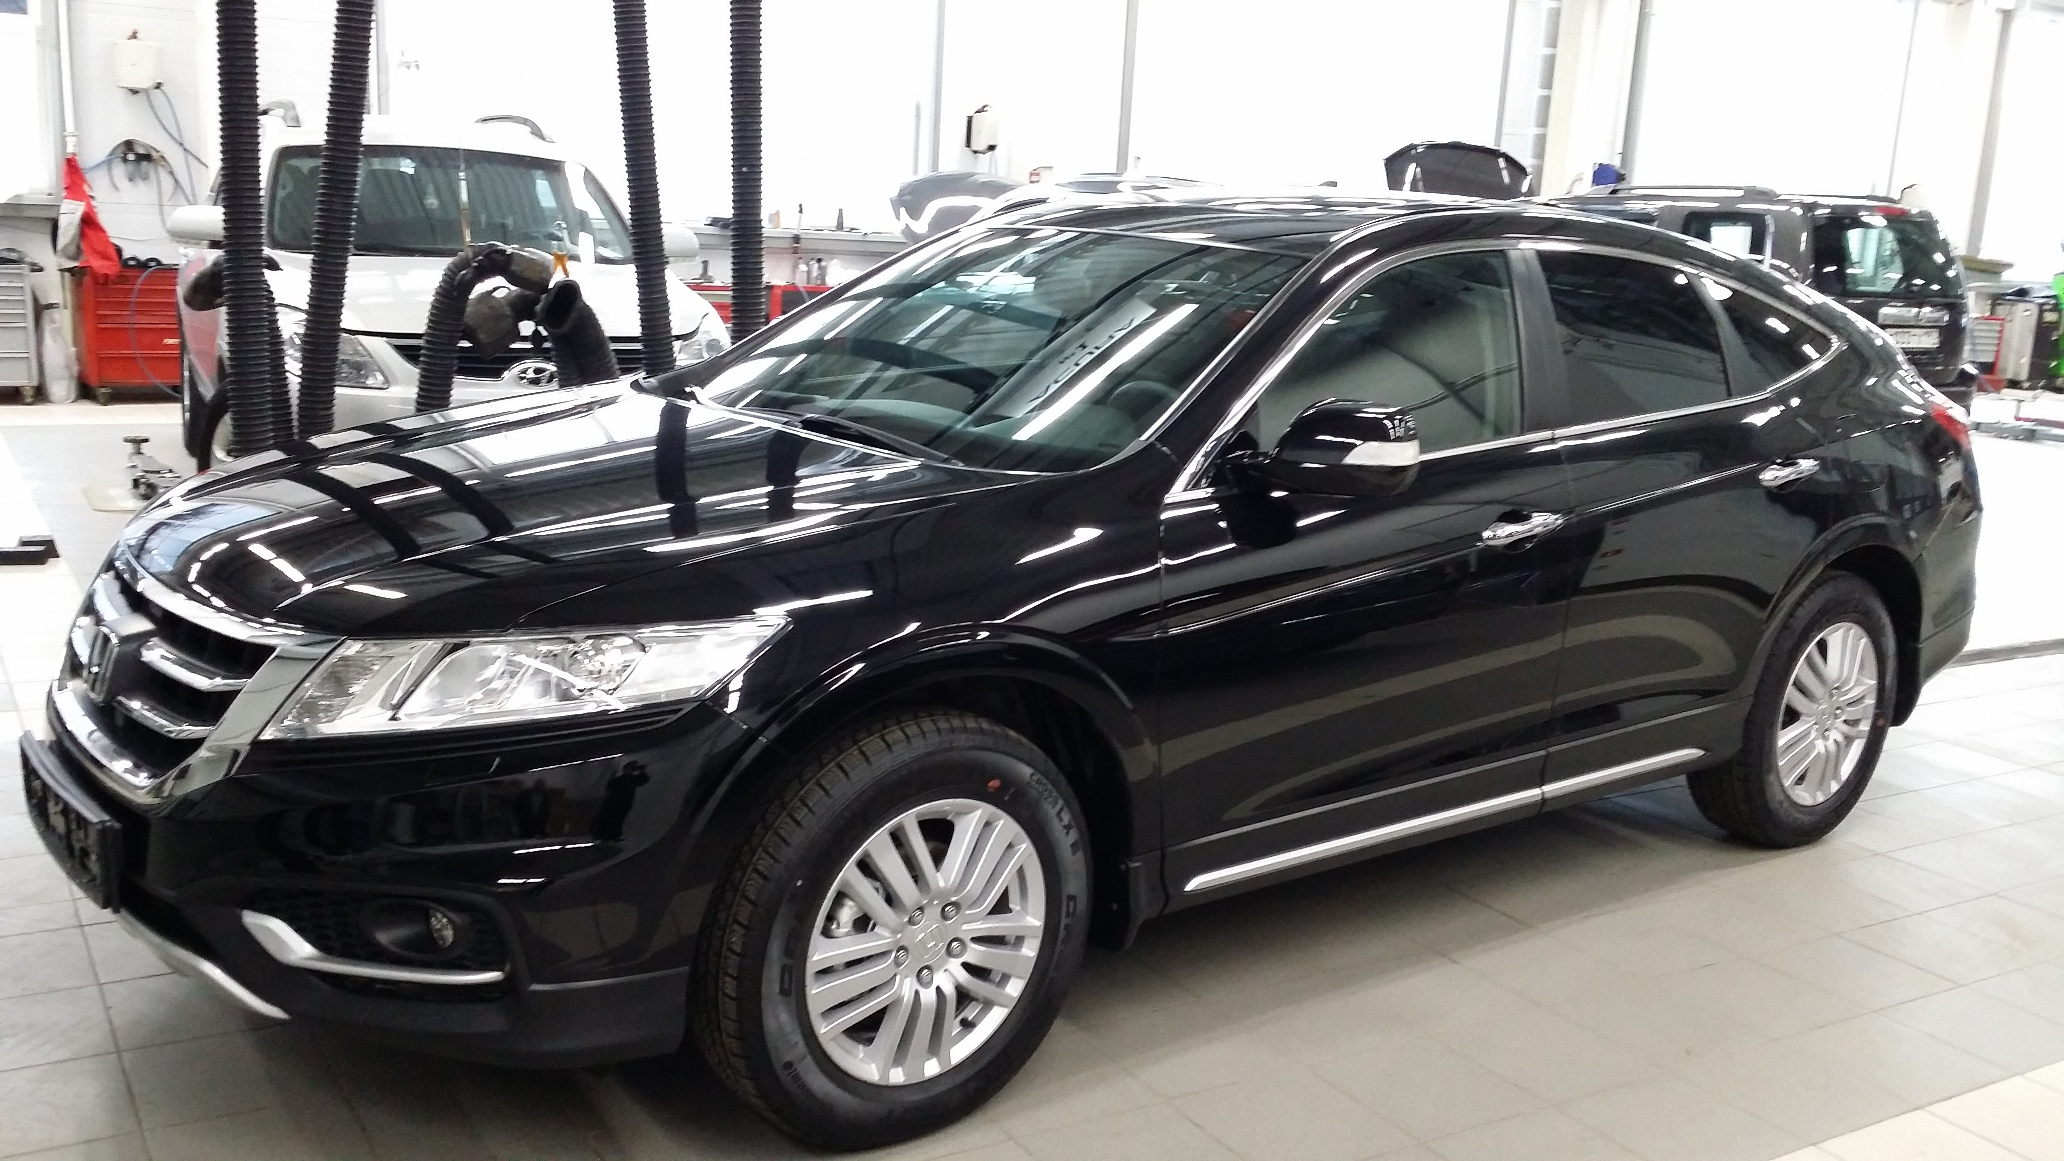 Honda Crosstour 2.4 2014 photo - 1